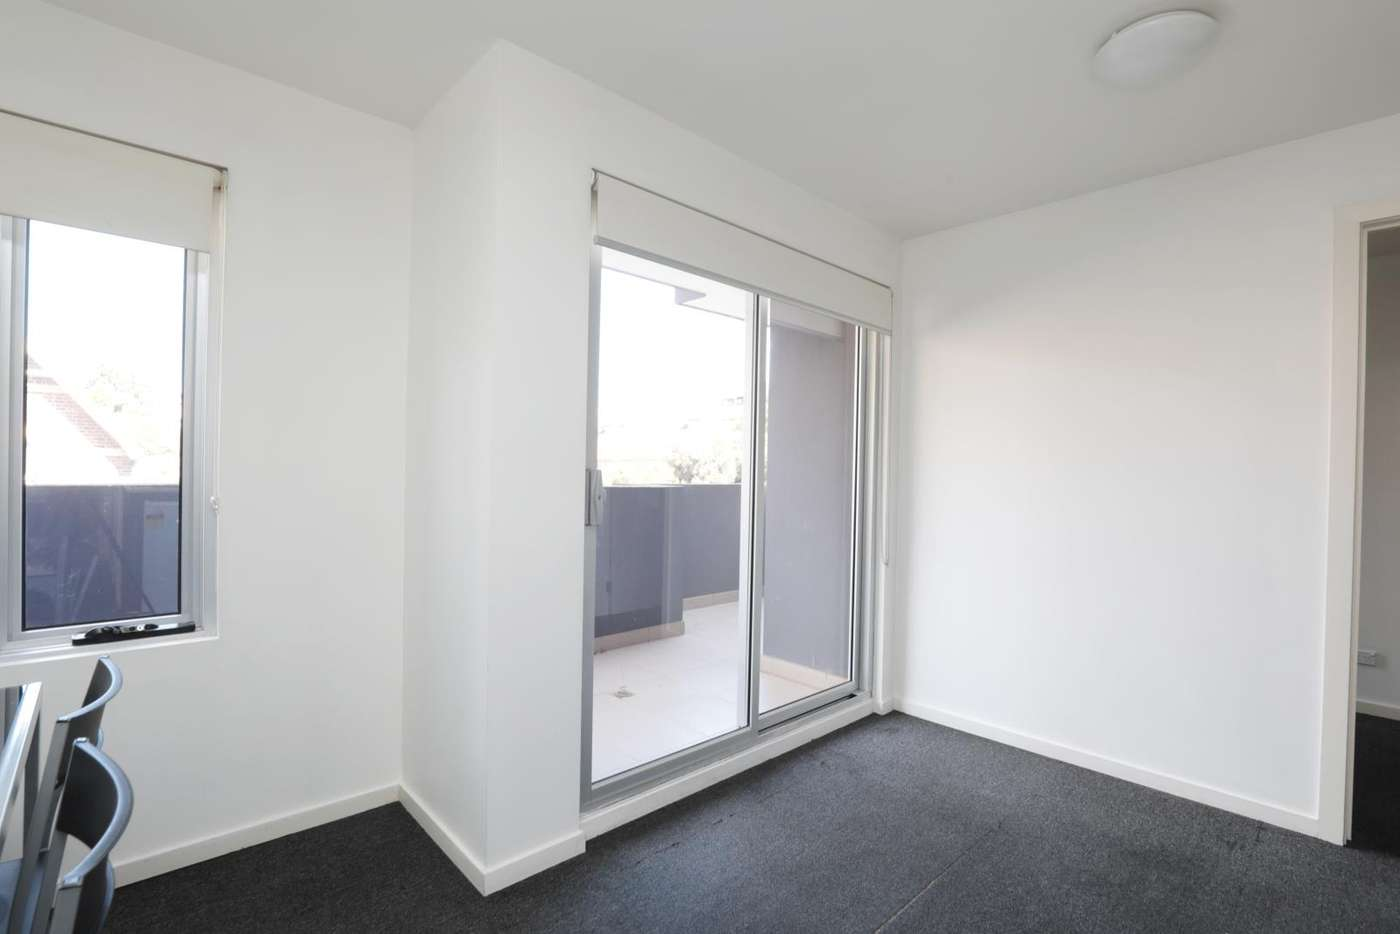 Seventh view of Homely apartment listing, 39/29-35 Lynch Street, Hawthorn VIC 3122